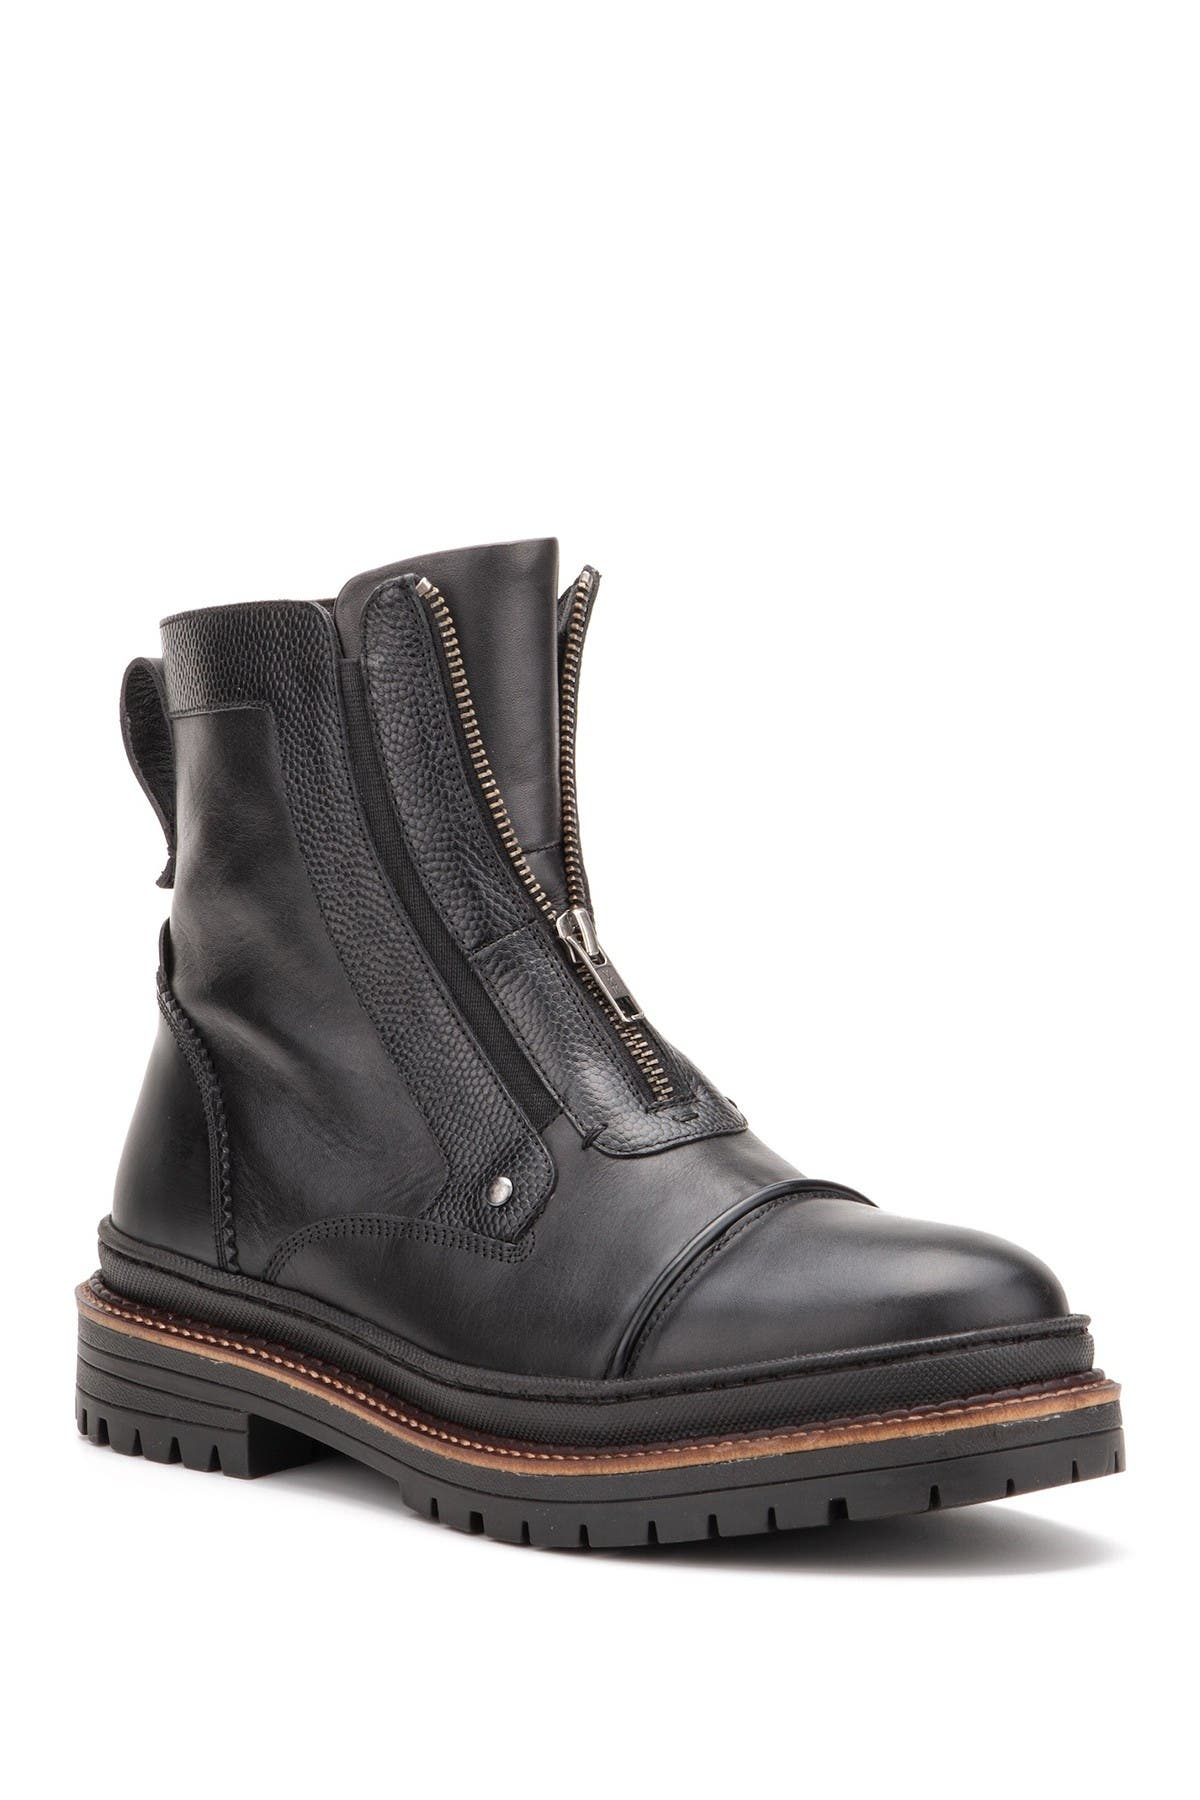 Image of Vintage Foundry Leather Zip Boot